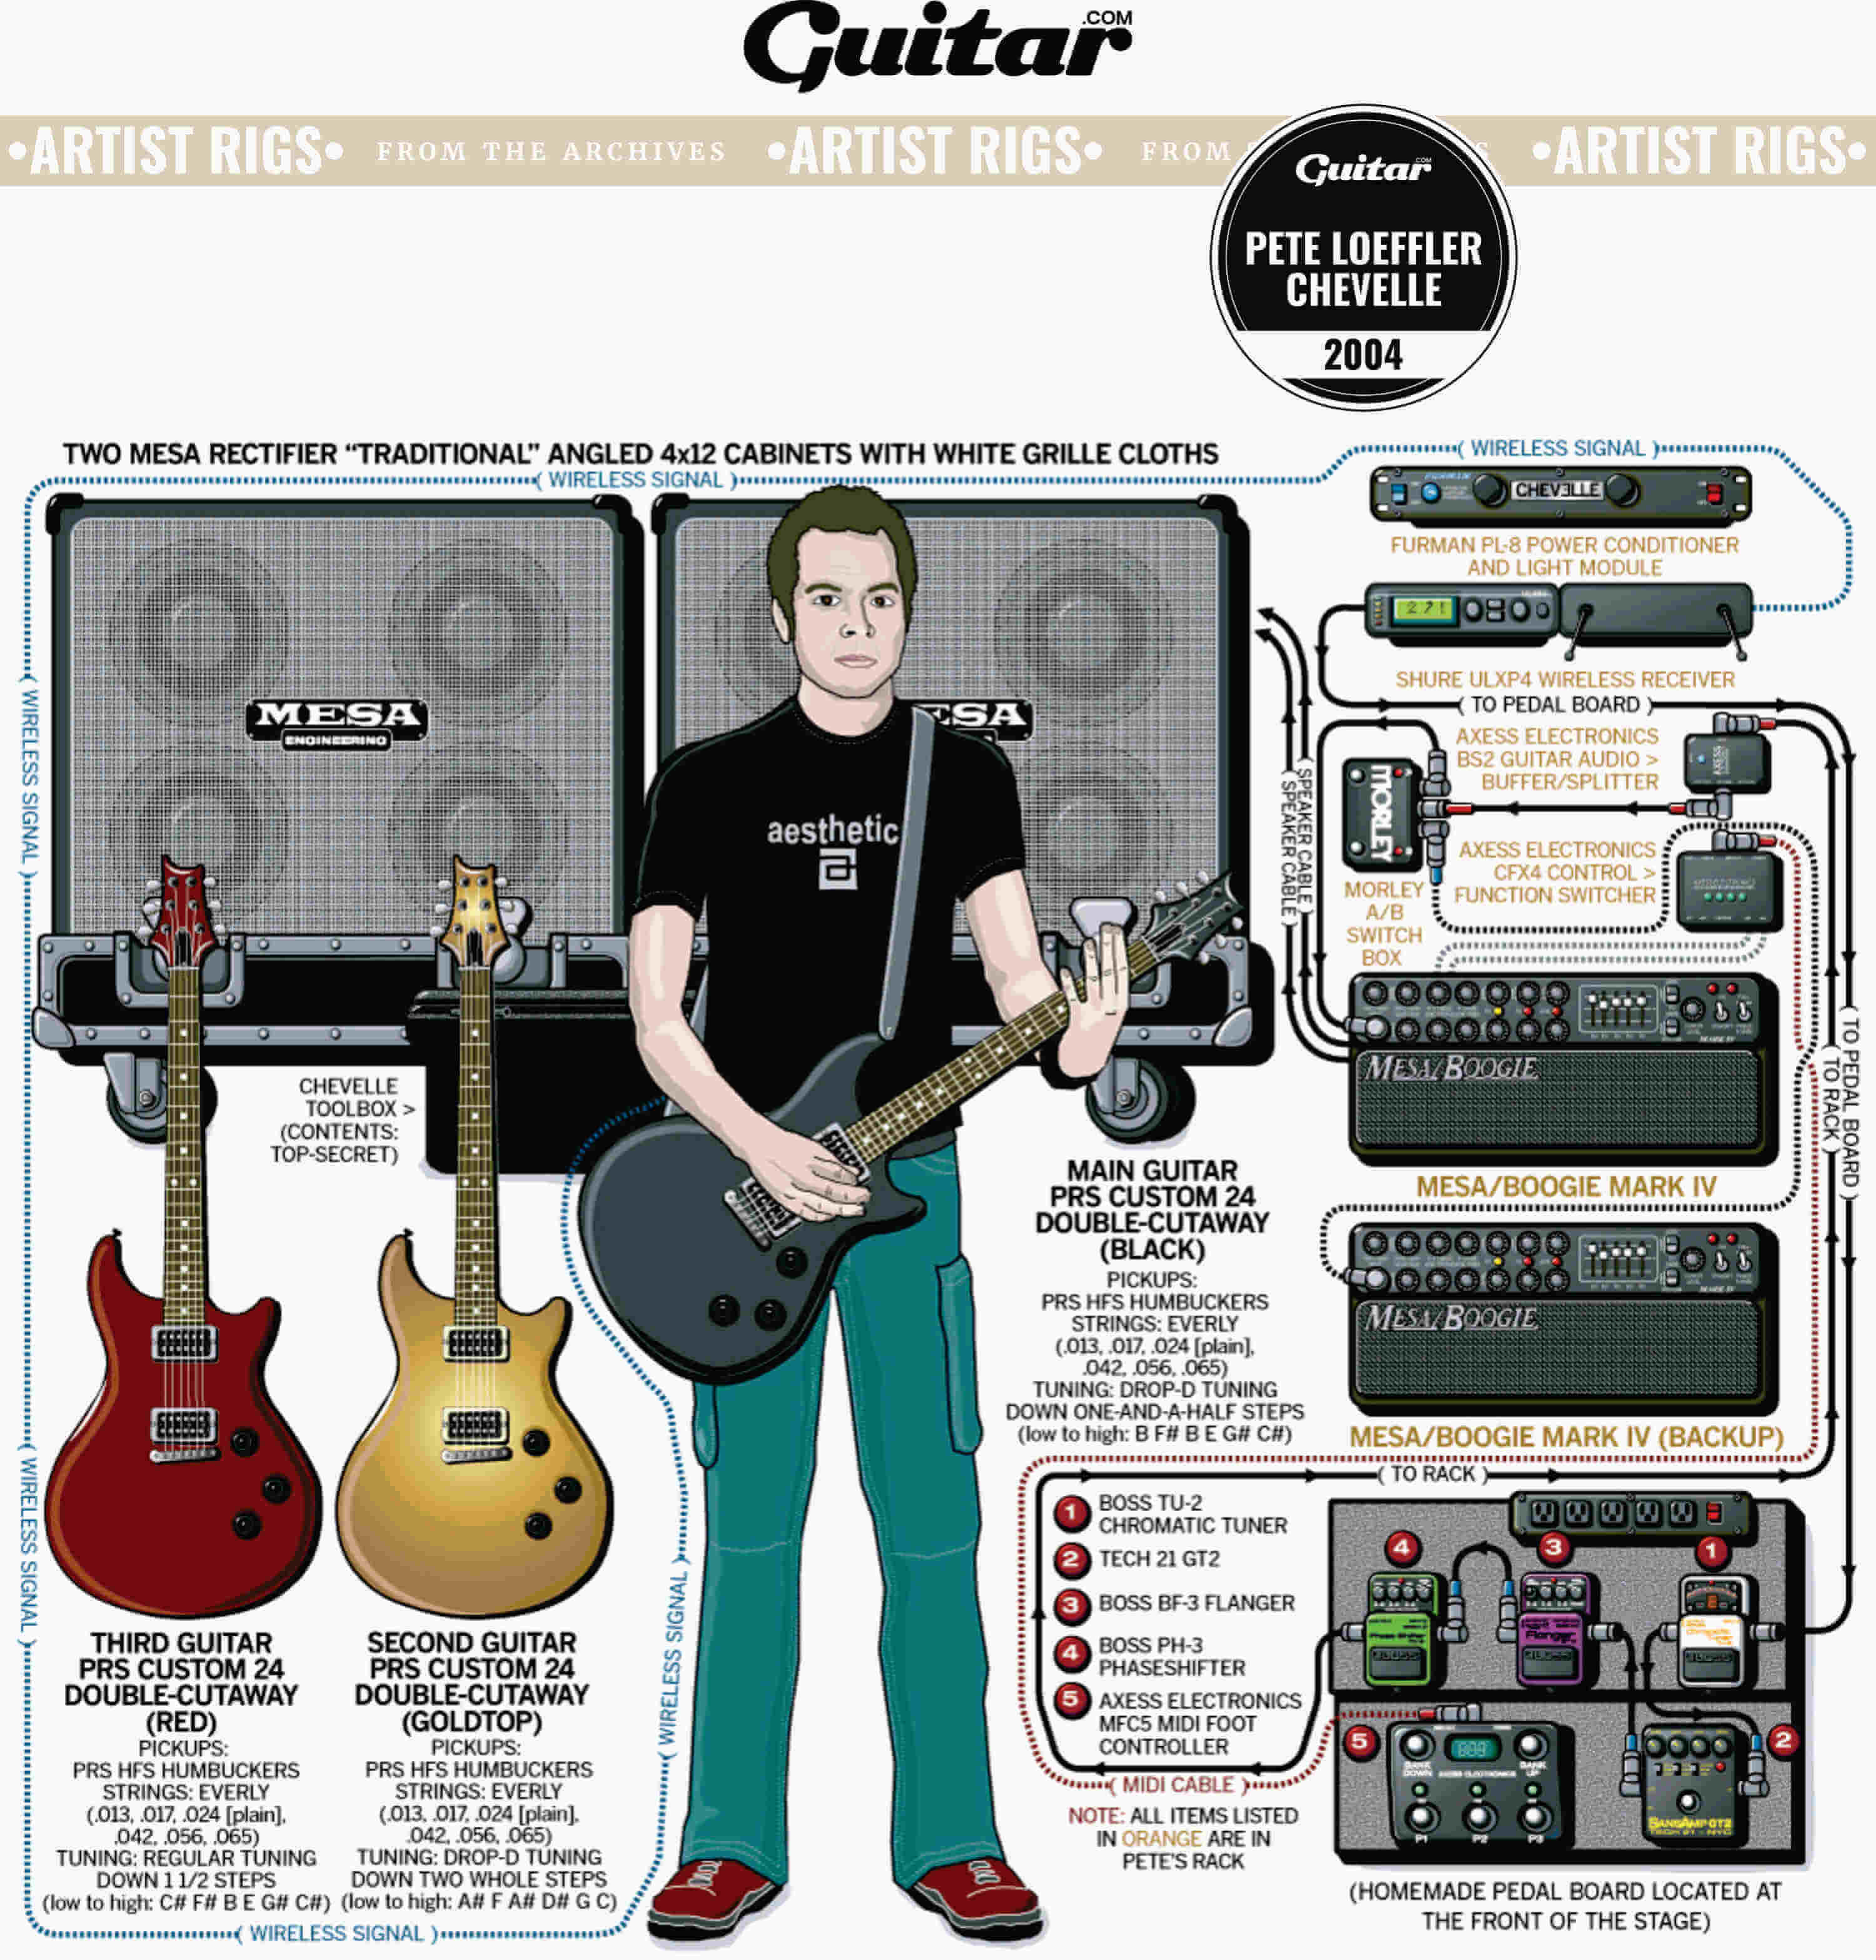 Rig Diagram: Pete Loeffler, Chevelle (2004)